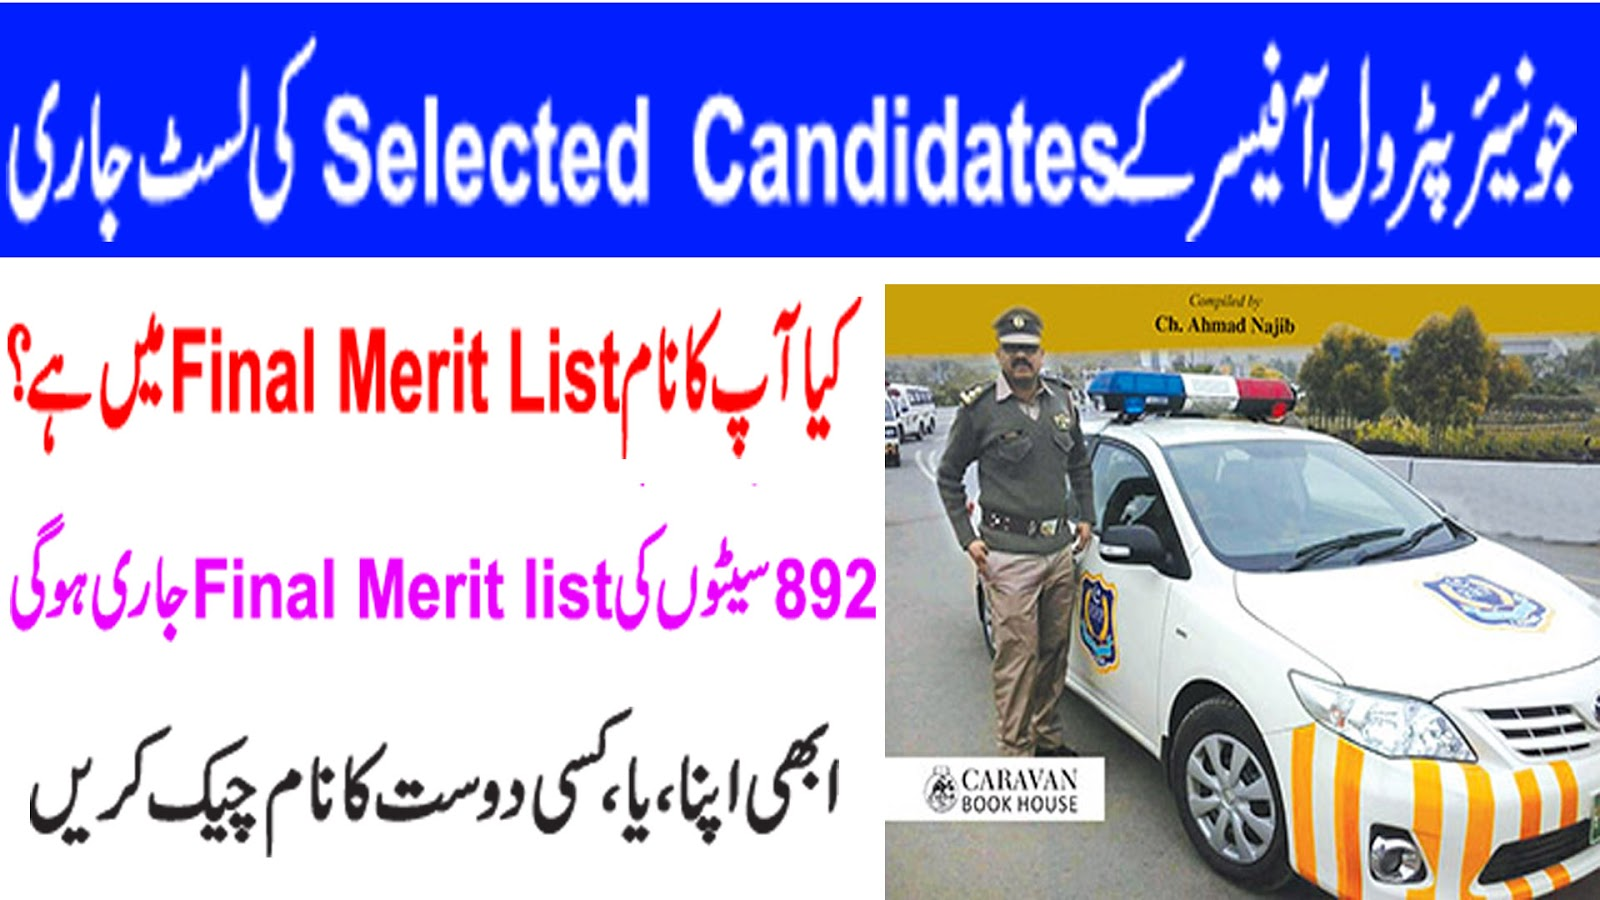 Merit list of Junior Patrol Officer 2019 - PTS selected candidates